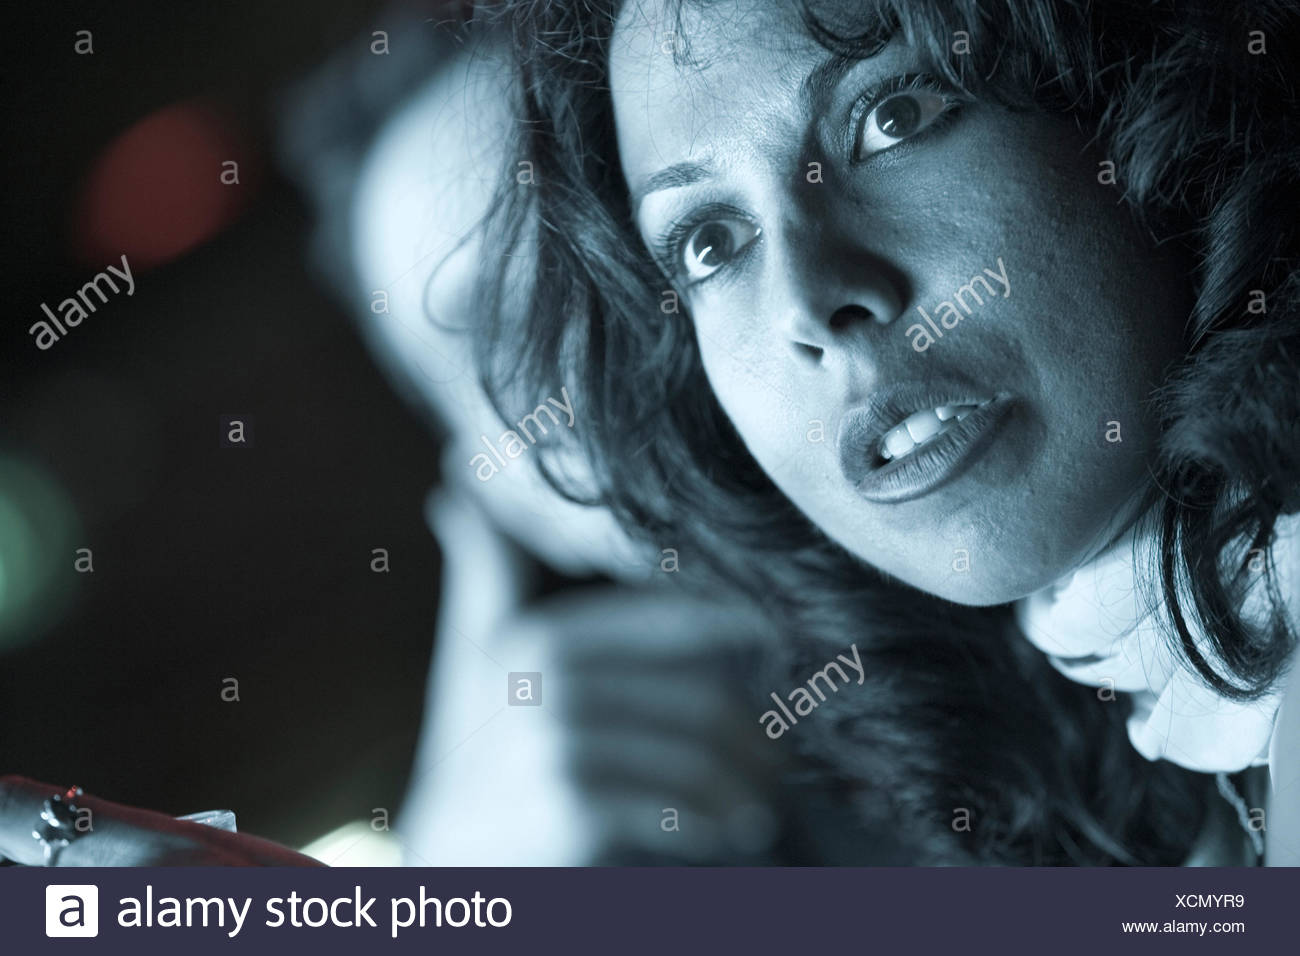 Portrait of a woman with a shocked look on her face. - Stock Image